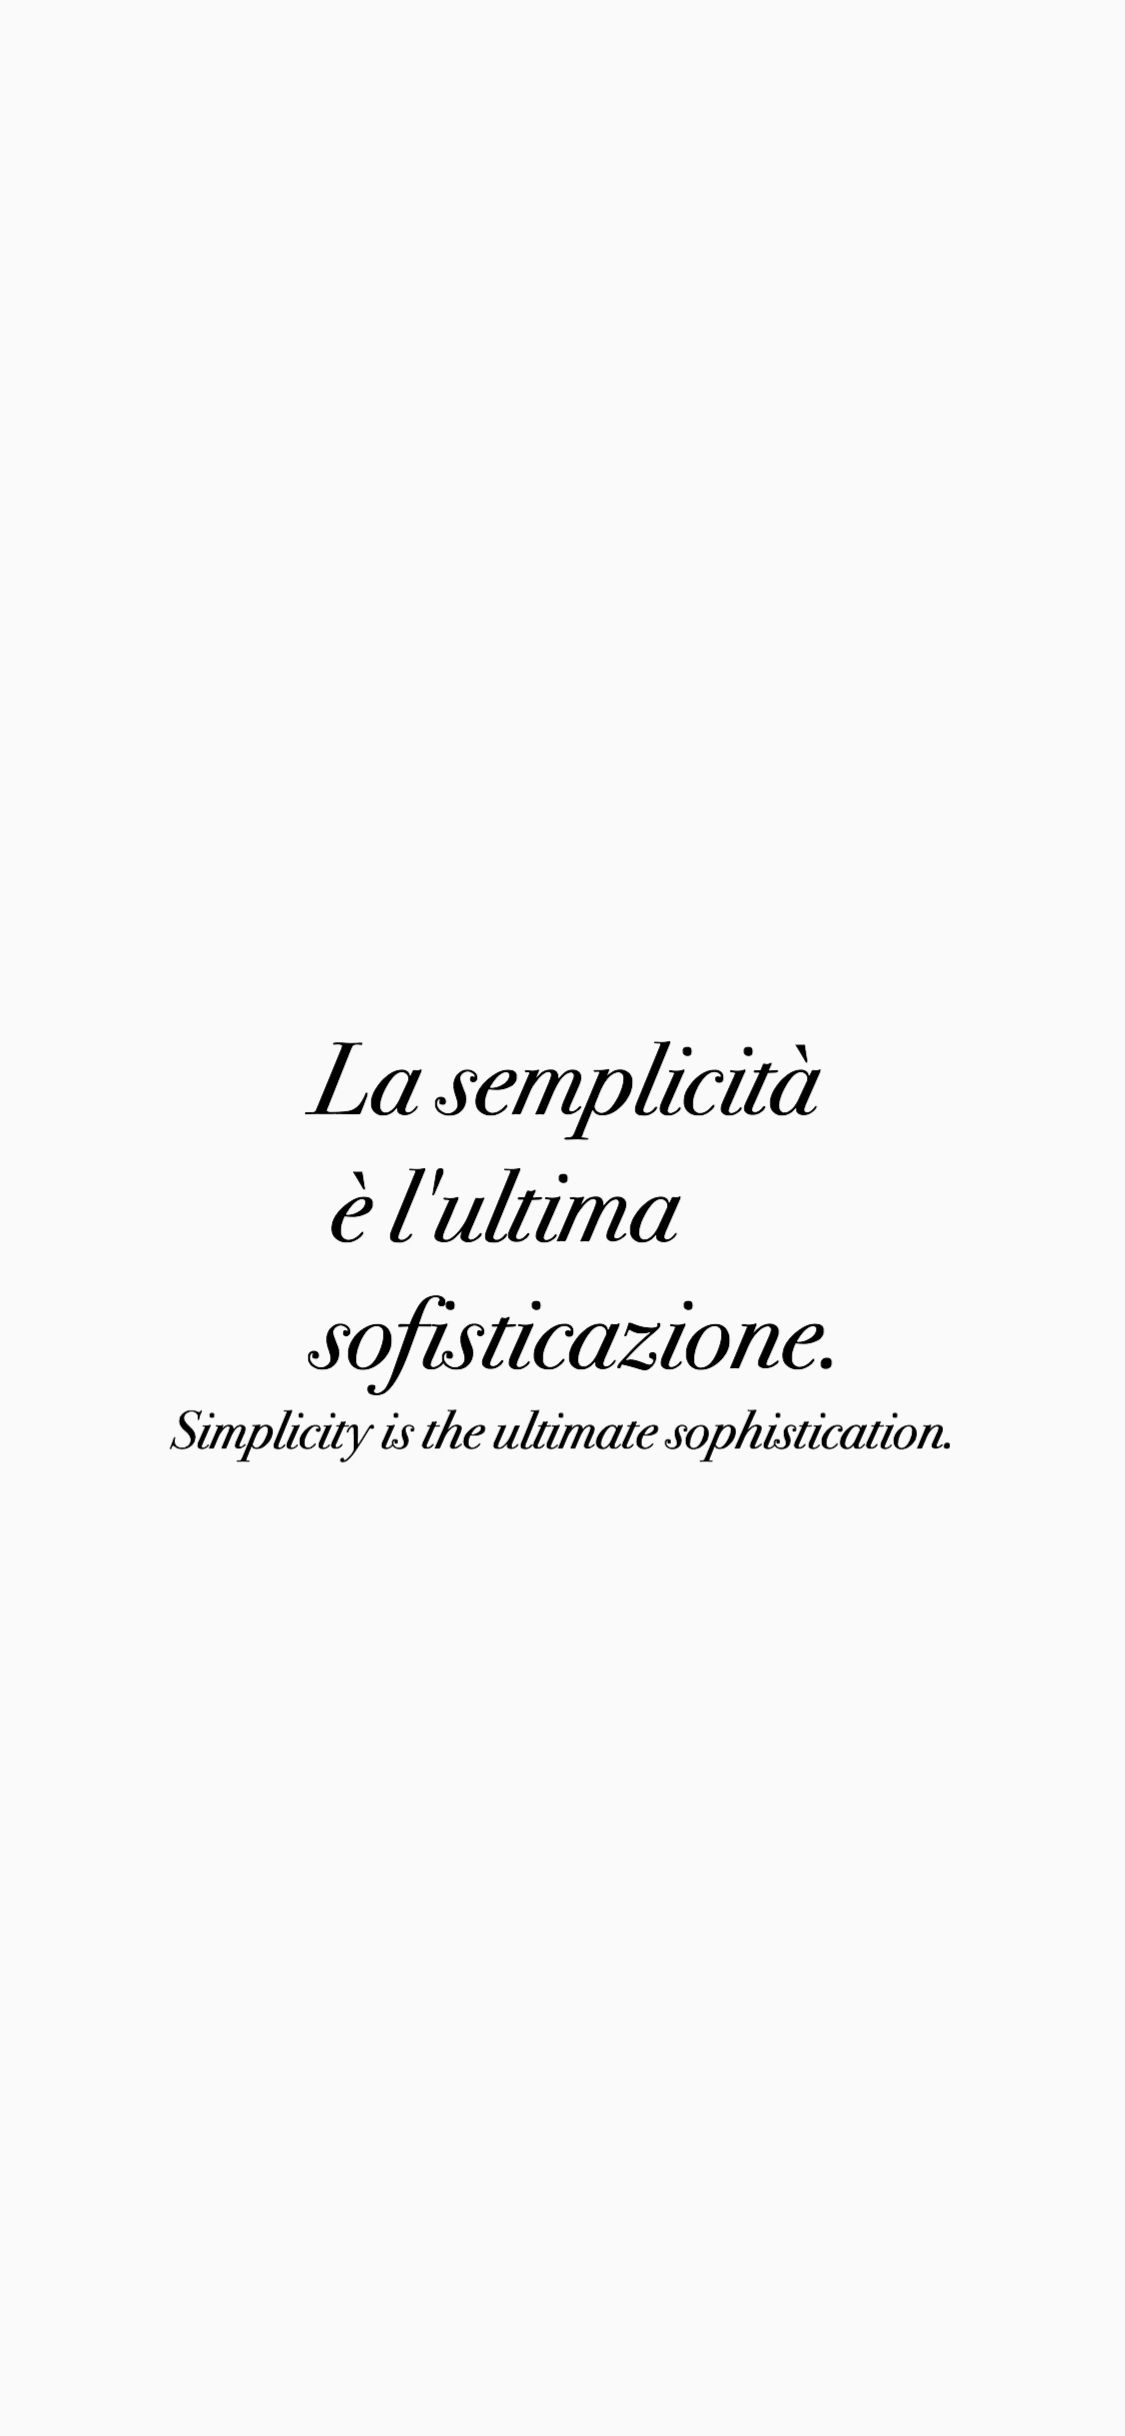 Italian Quotes Iphone Wallpaper Quotes Sophistication And Simplicity Simplicity Is The Ultimate So Italian Quotes Inspirational Quotes Quote Backgrounds